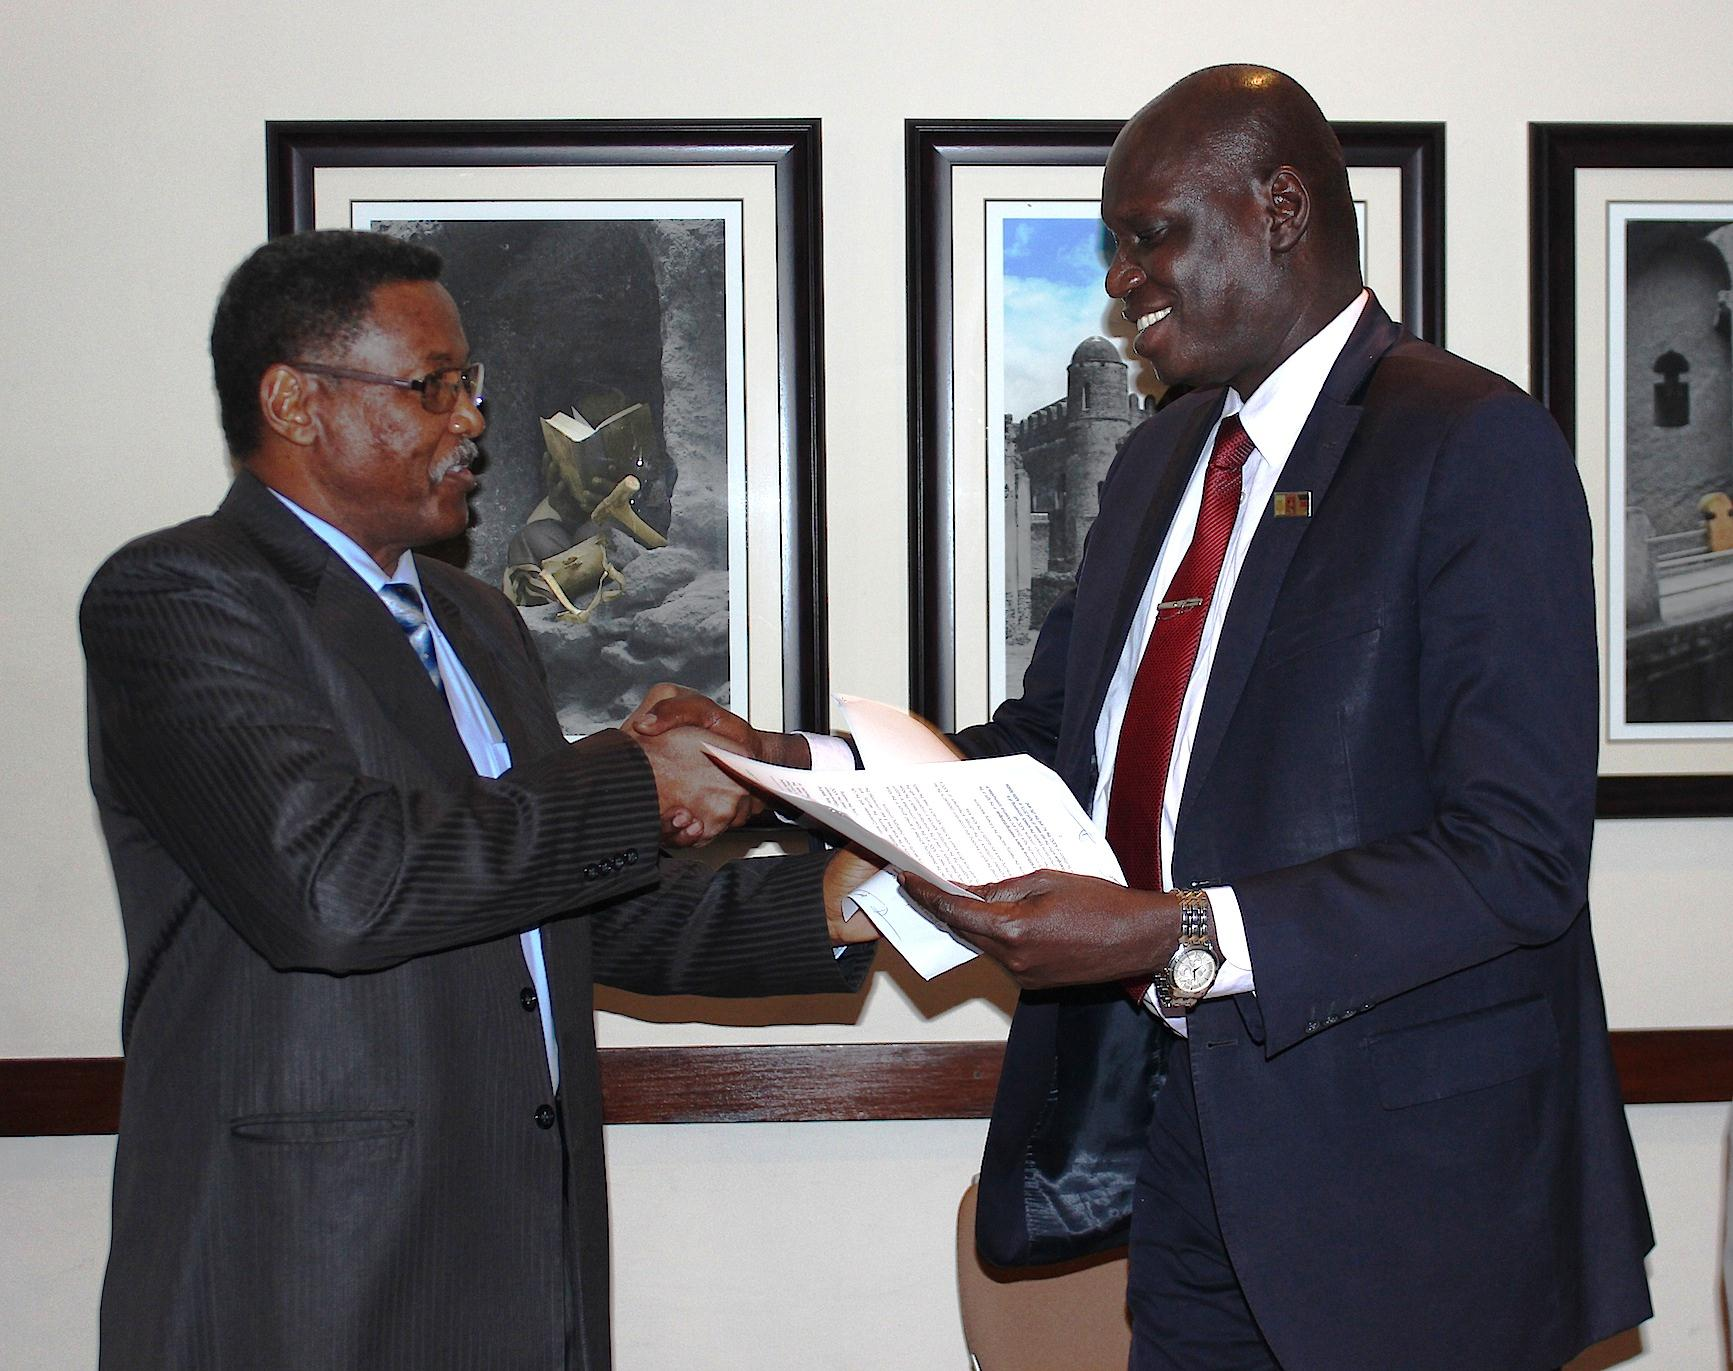 The Abyei Joint Oversight Committee (AJOC) between Sudan & South Sudan reaches Resolutions at its 9th meeting, held in Addis Ababa, 29-30 March 2015